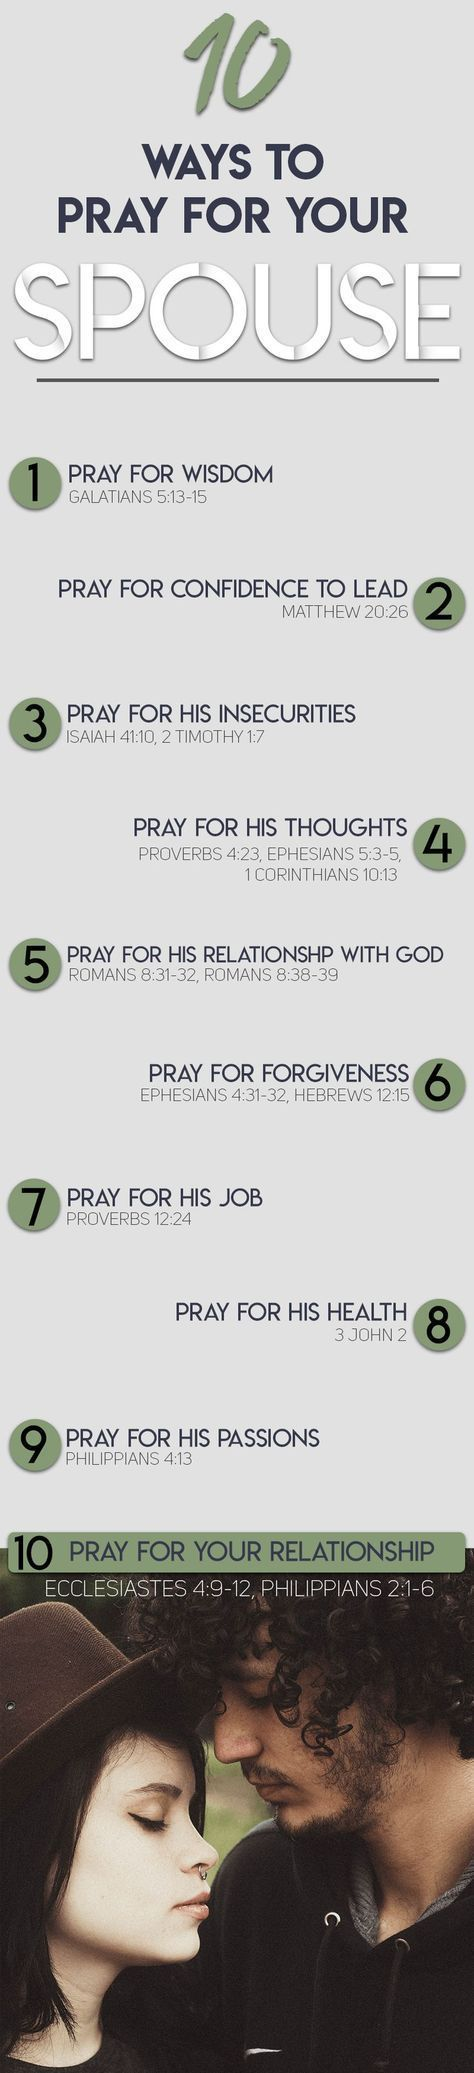 10 ways to pray for your spouse | pray | spouse | christian marriage |marriage | Engagement| dating |prayer